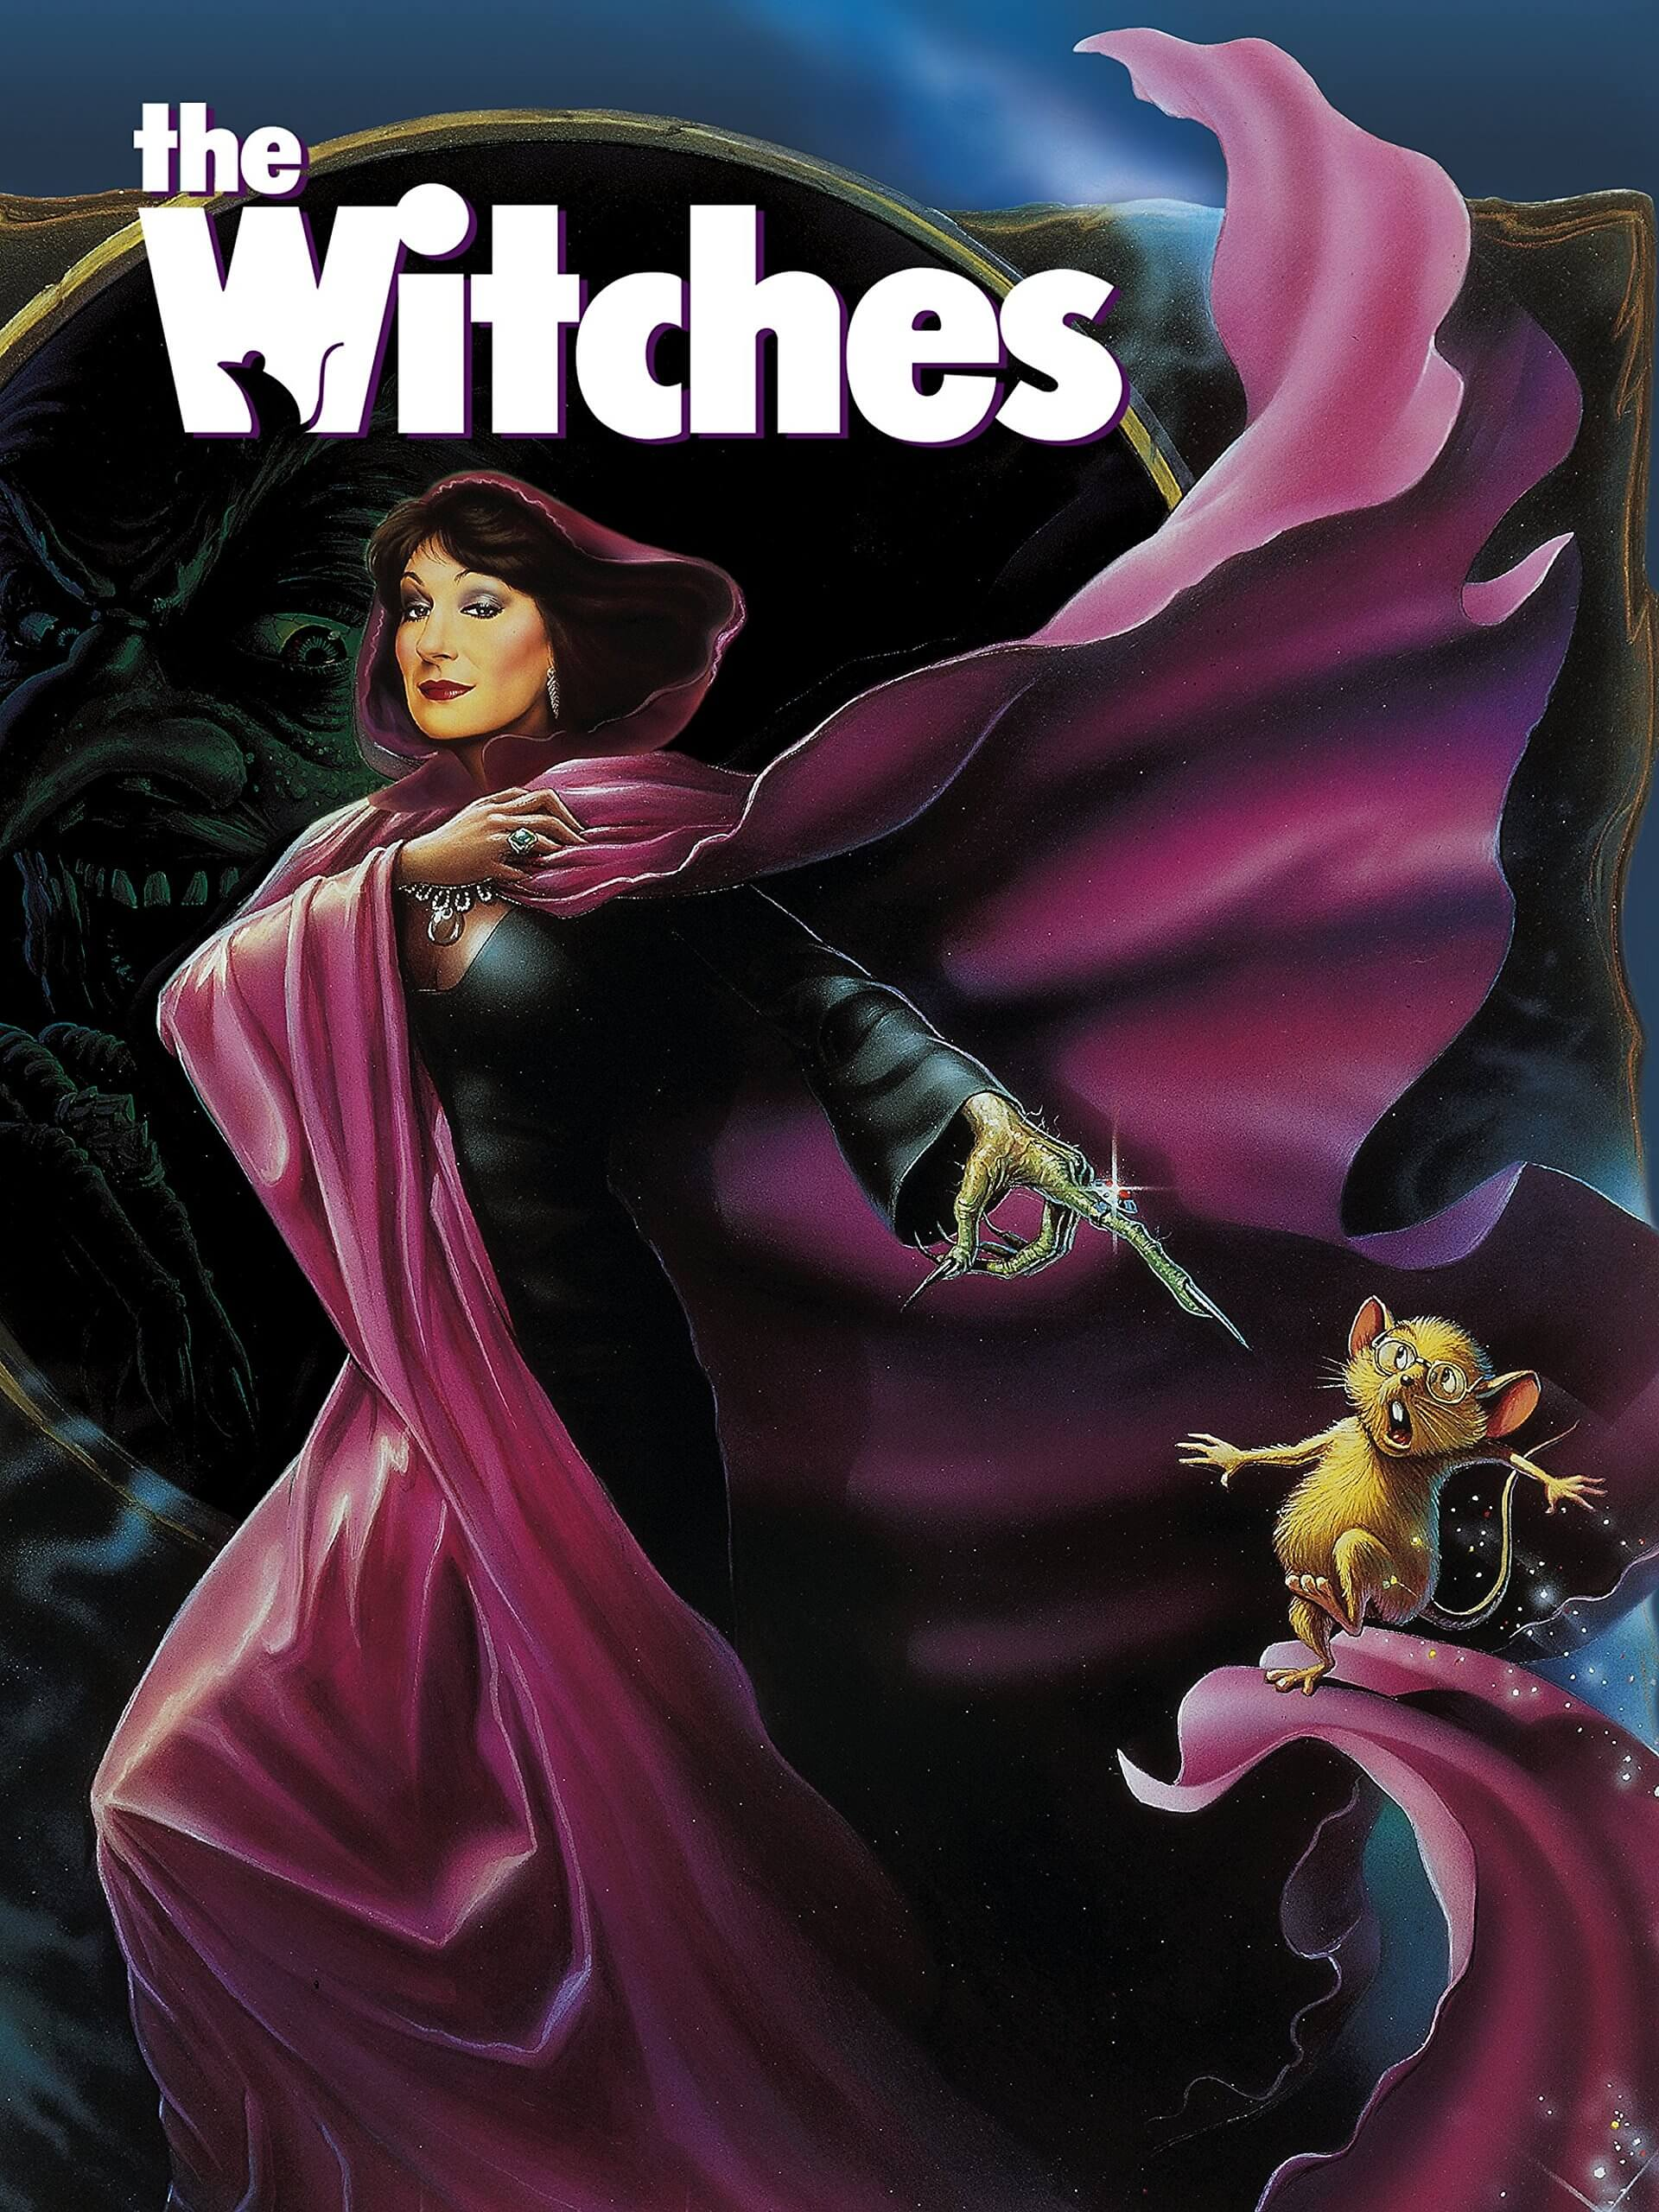 THE WITCHES halloween movie